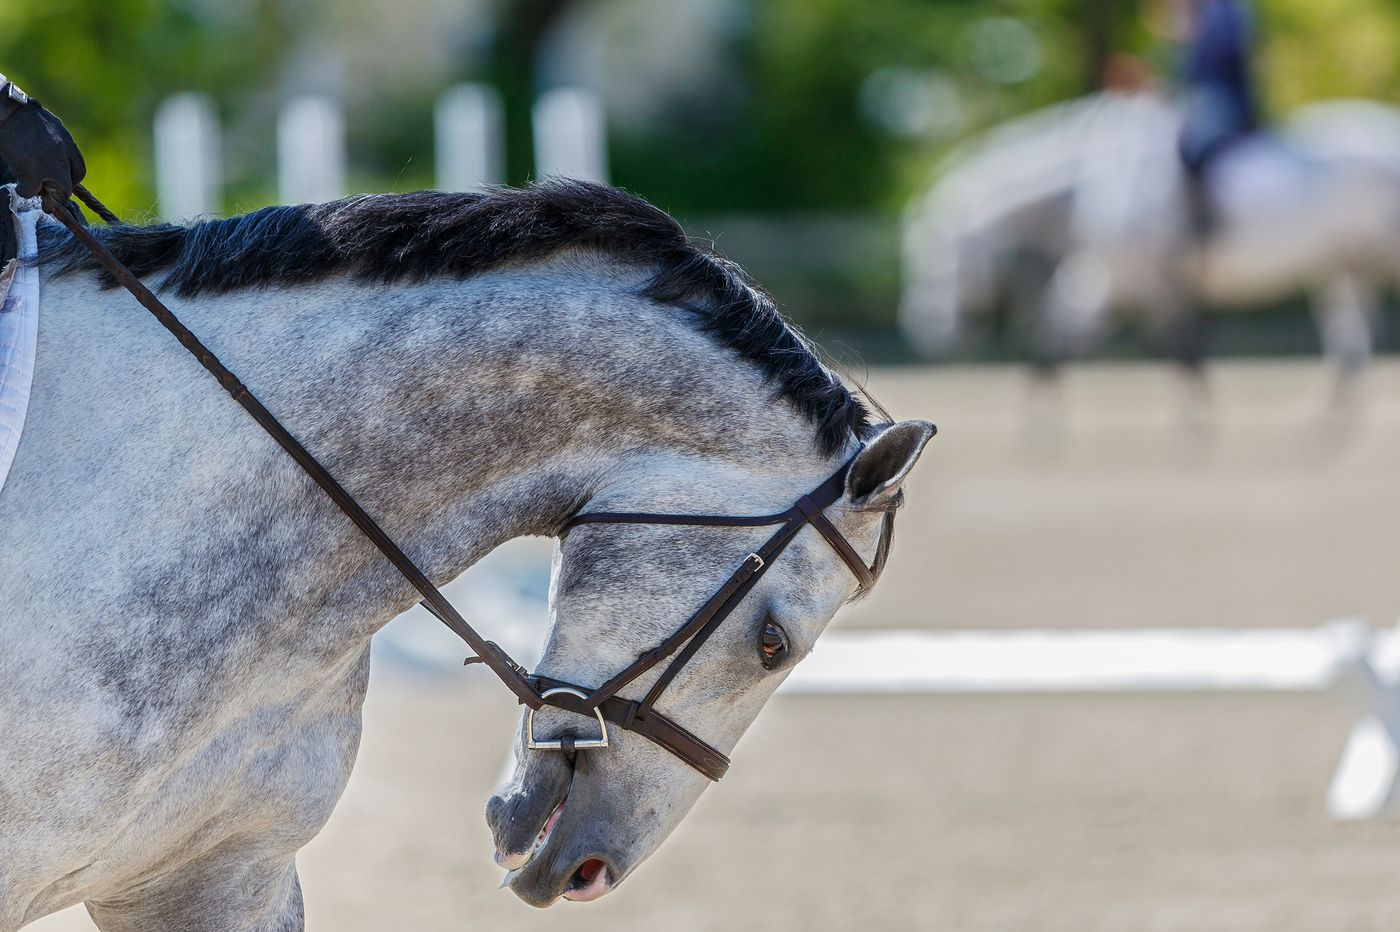 In Chester County, 'Plantation Field' equestrian event is canceled amid debate over its name